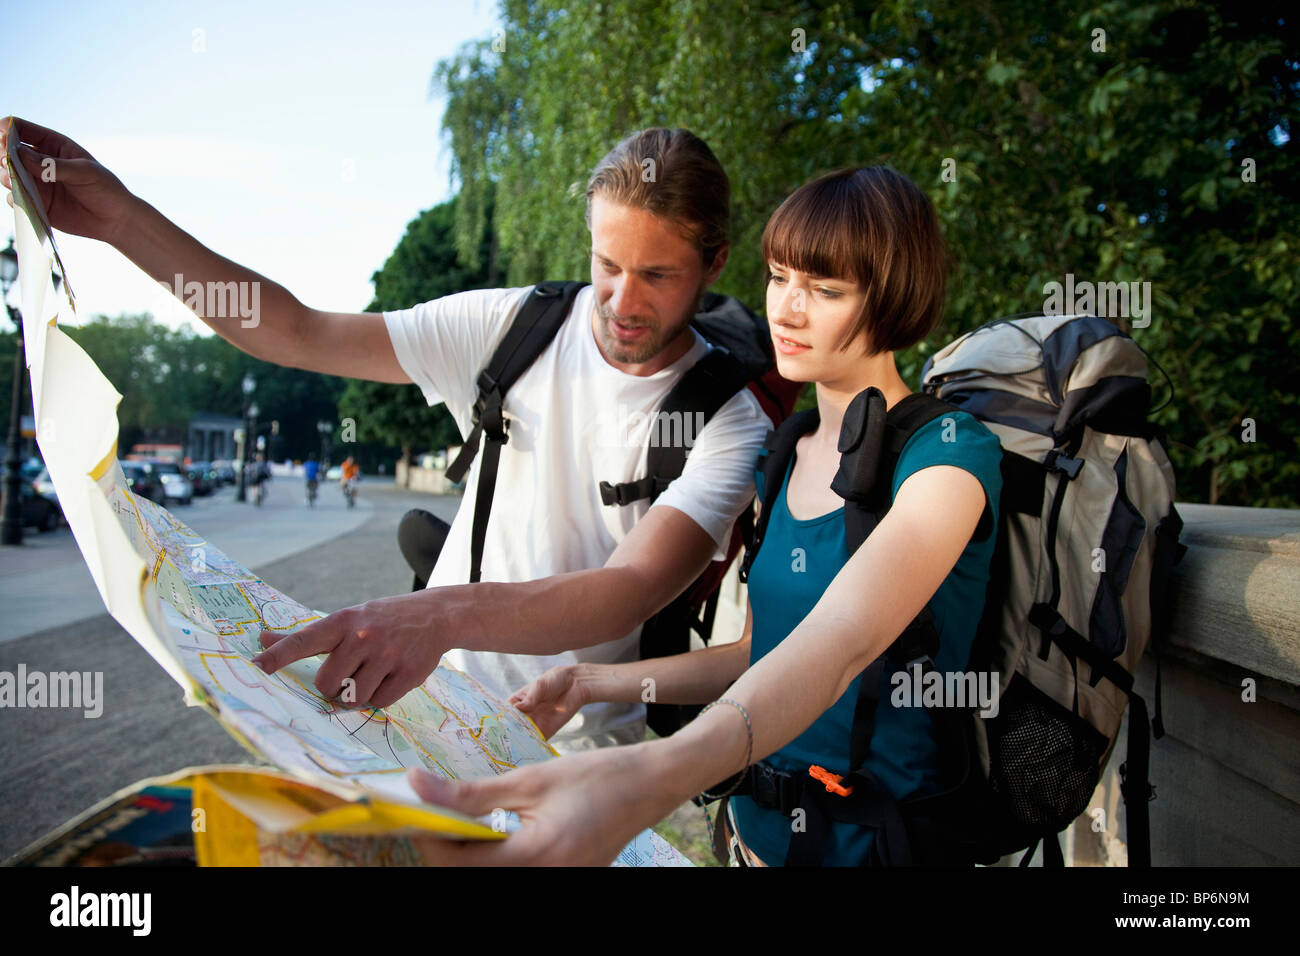 A young backpacker couple looking at a city map - Stock Image